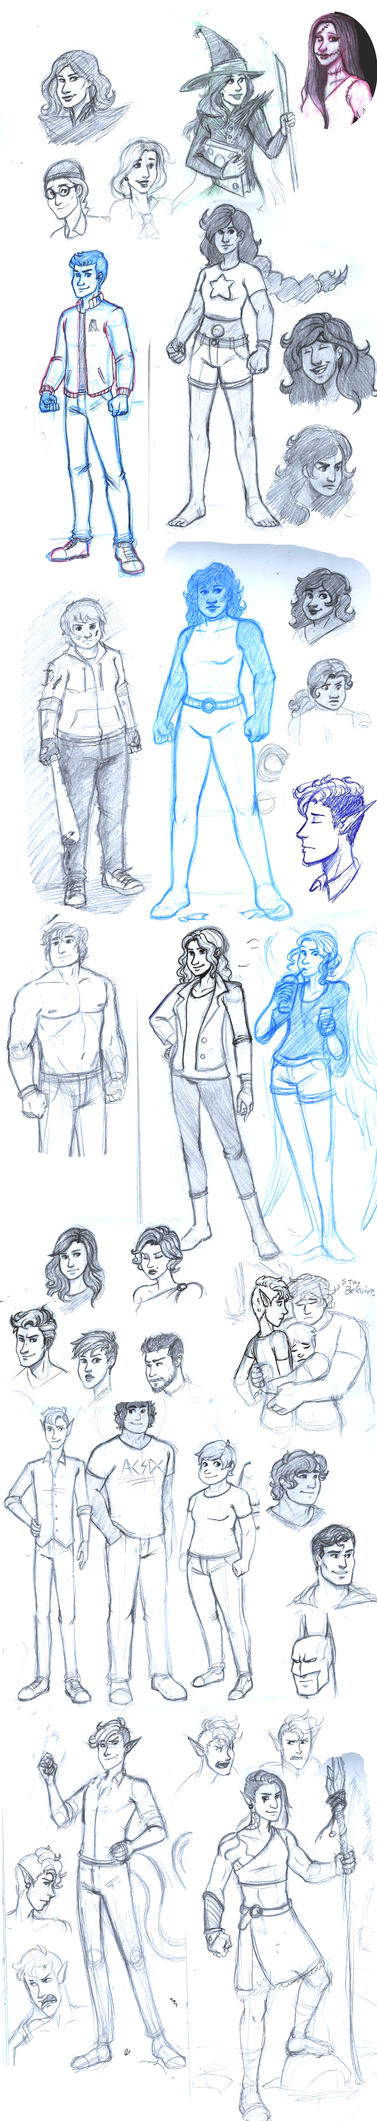 Sketchdump - Late 2016 by NowhereManArt